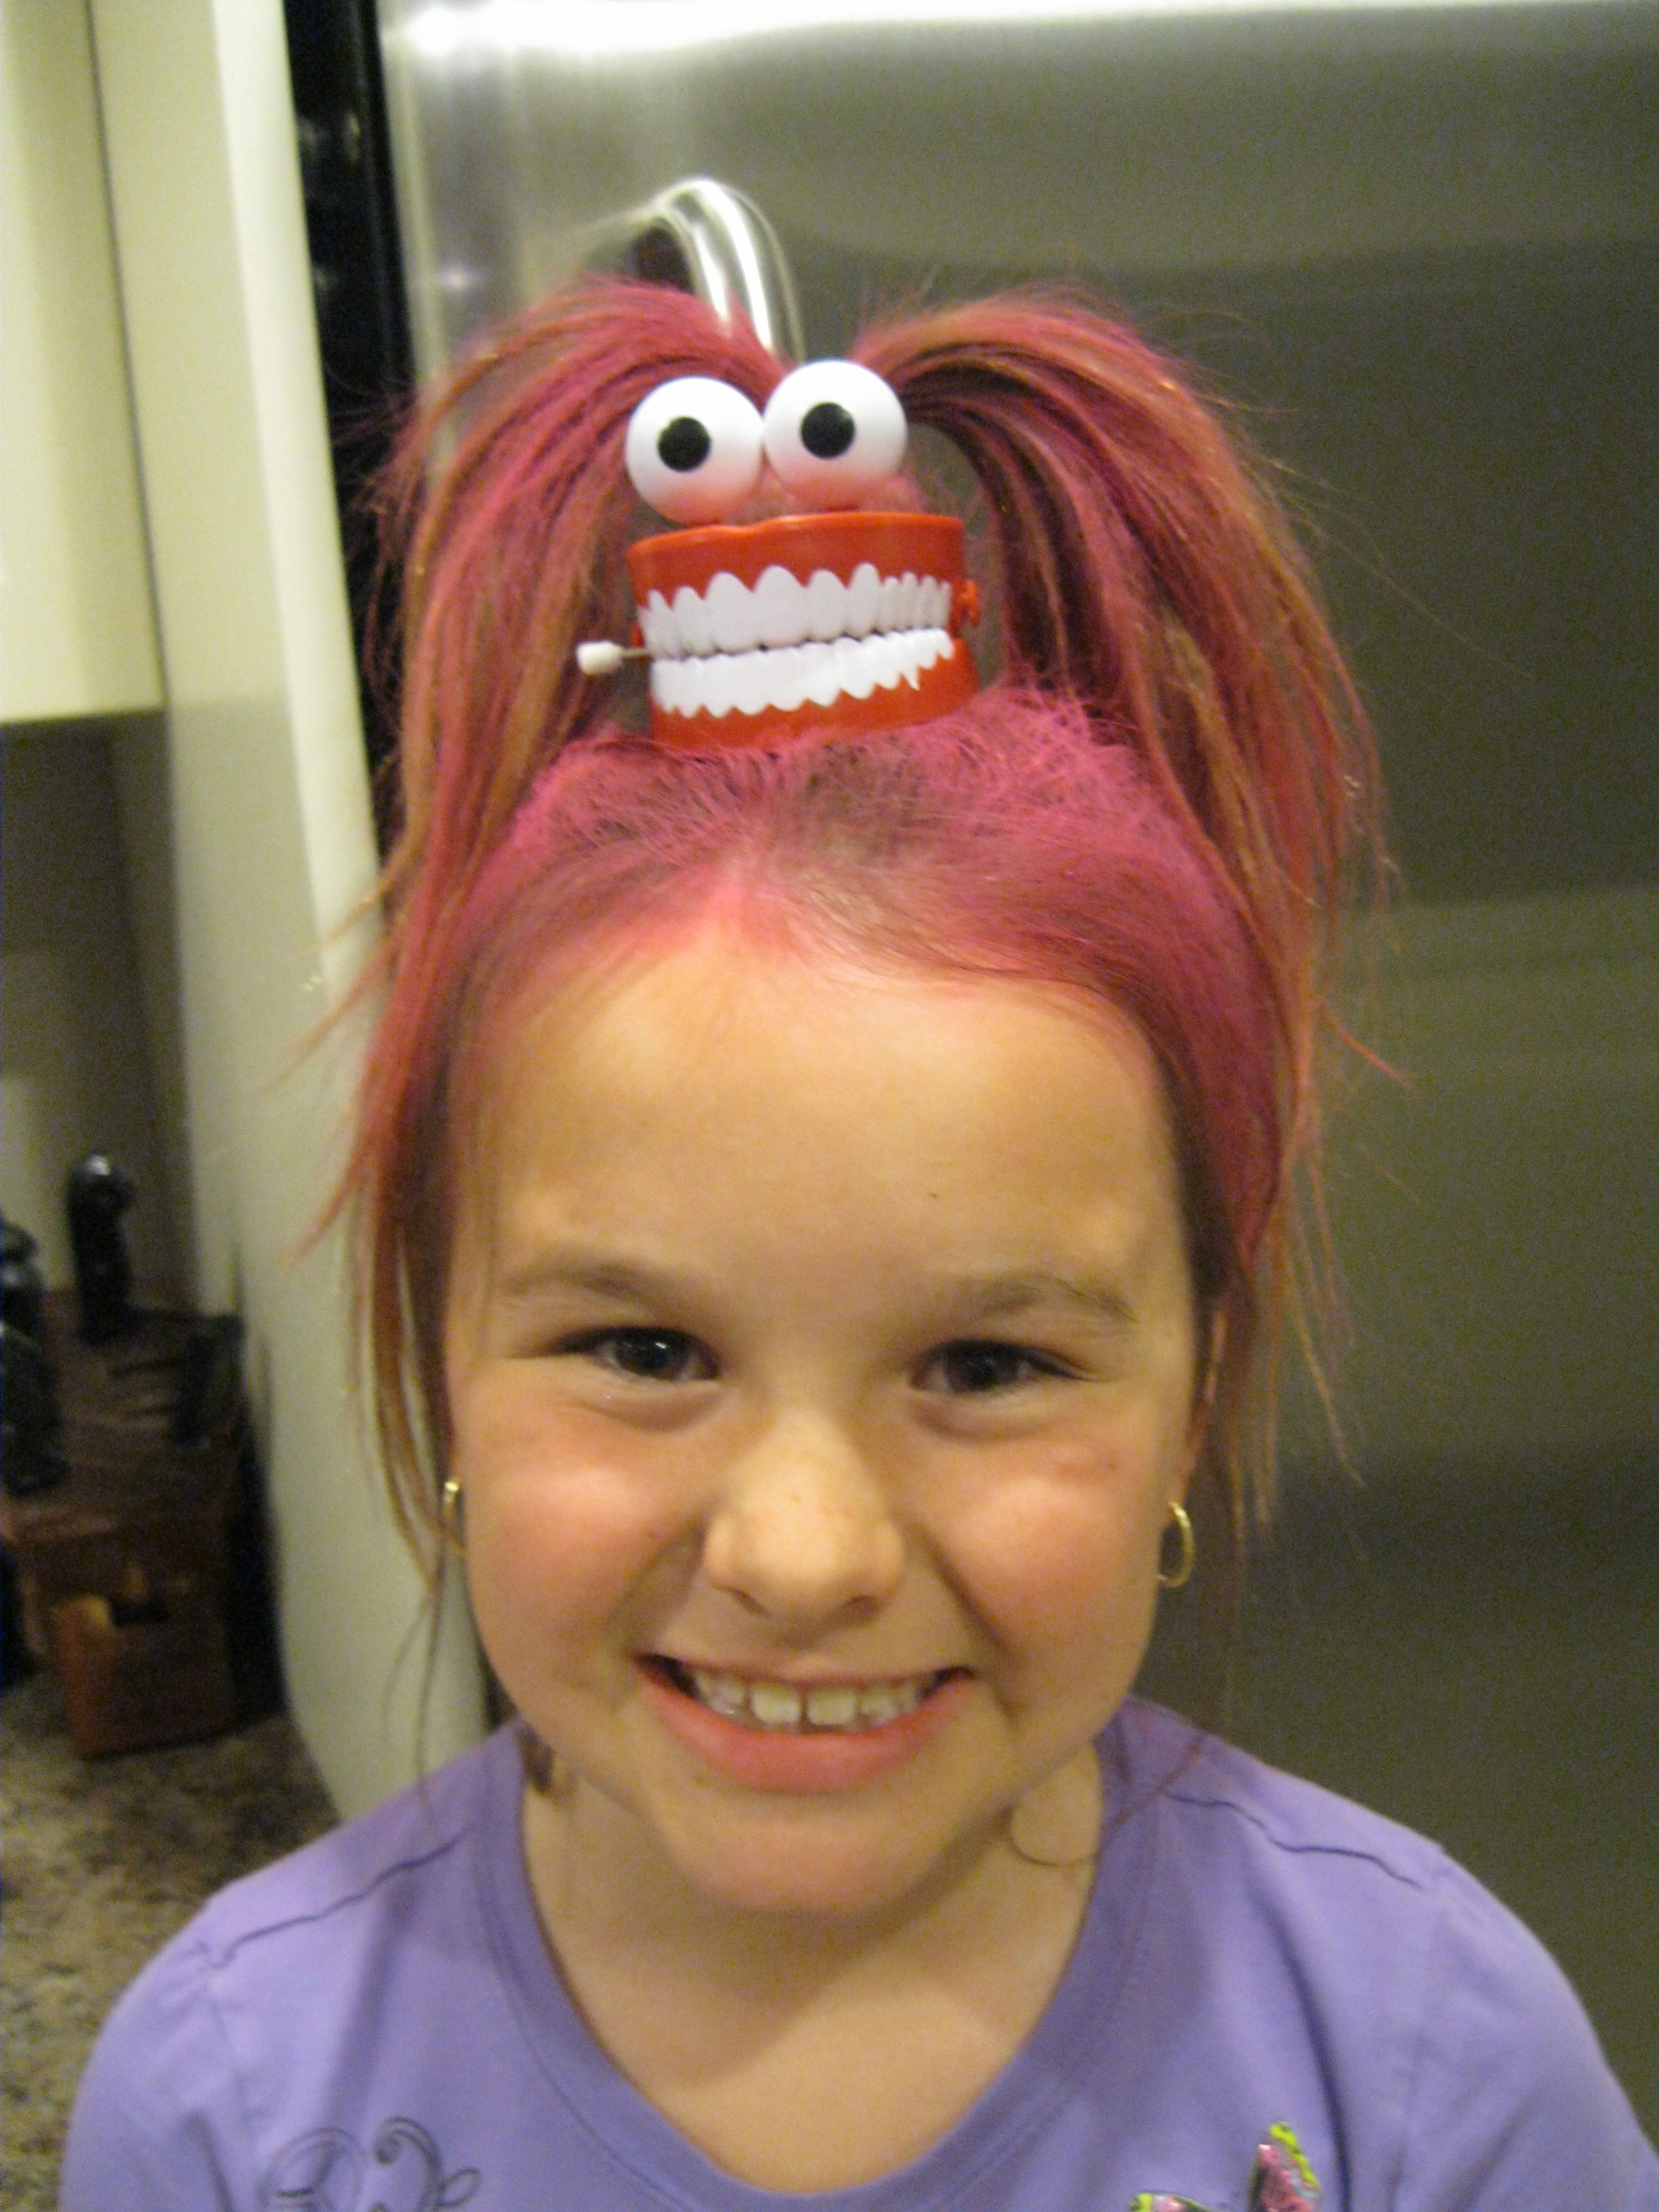 Pin By Dannah Gresh On True Girl Crazy Hair Ideas Wacky Hair Wacky Hair Days Crazy Hair For Kids